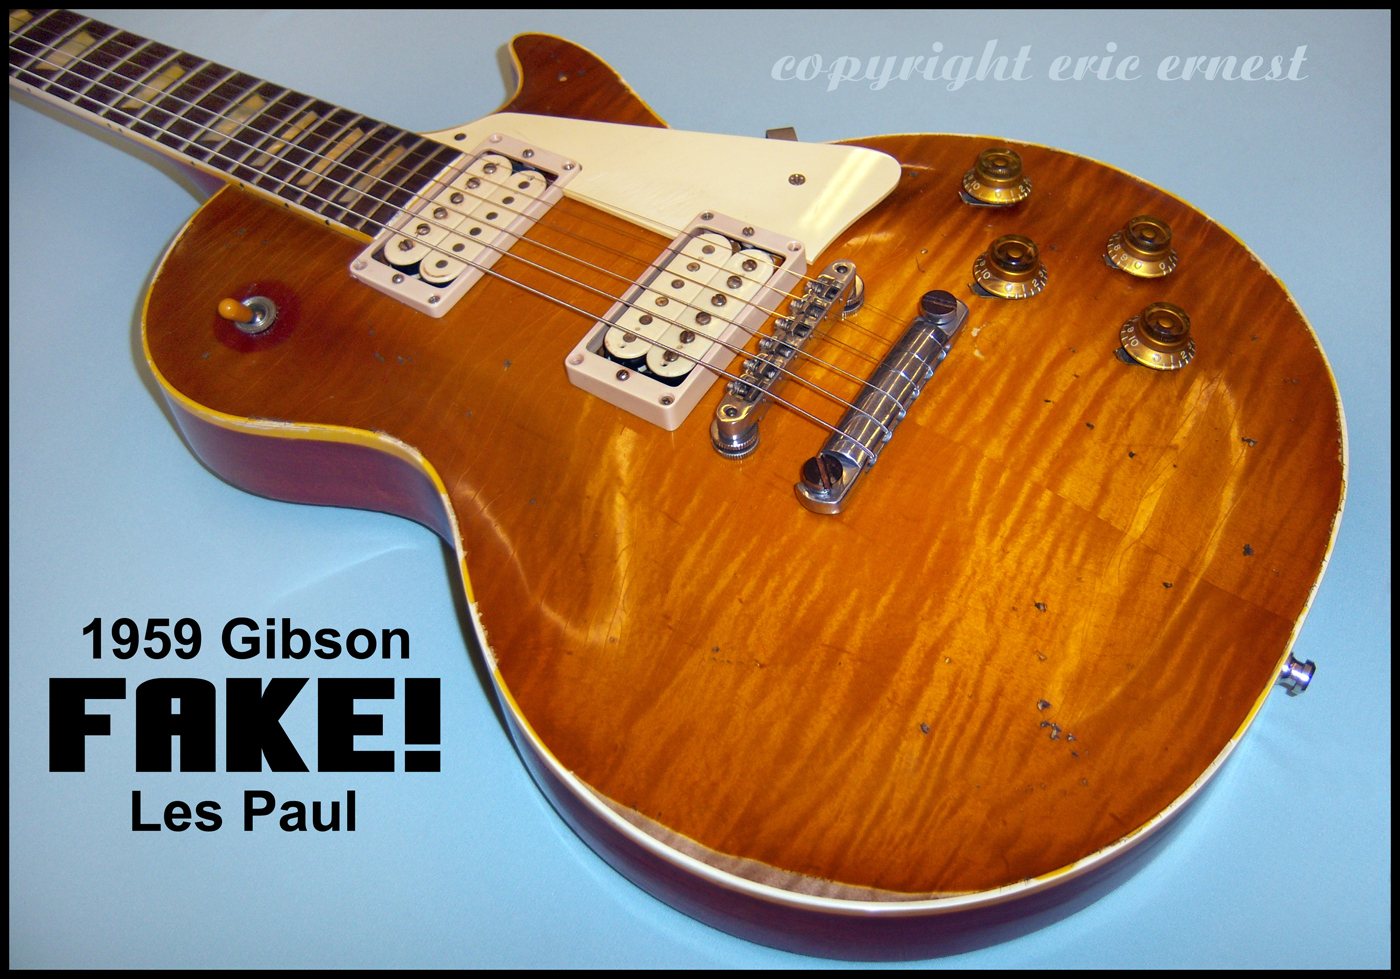 Fake 1959 Gibson Les Paul guitar Forgery replica les paul copy fake replica Gibson guitars hire an expert authentication specialist